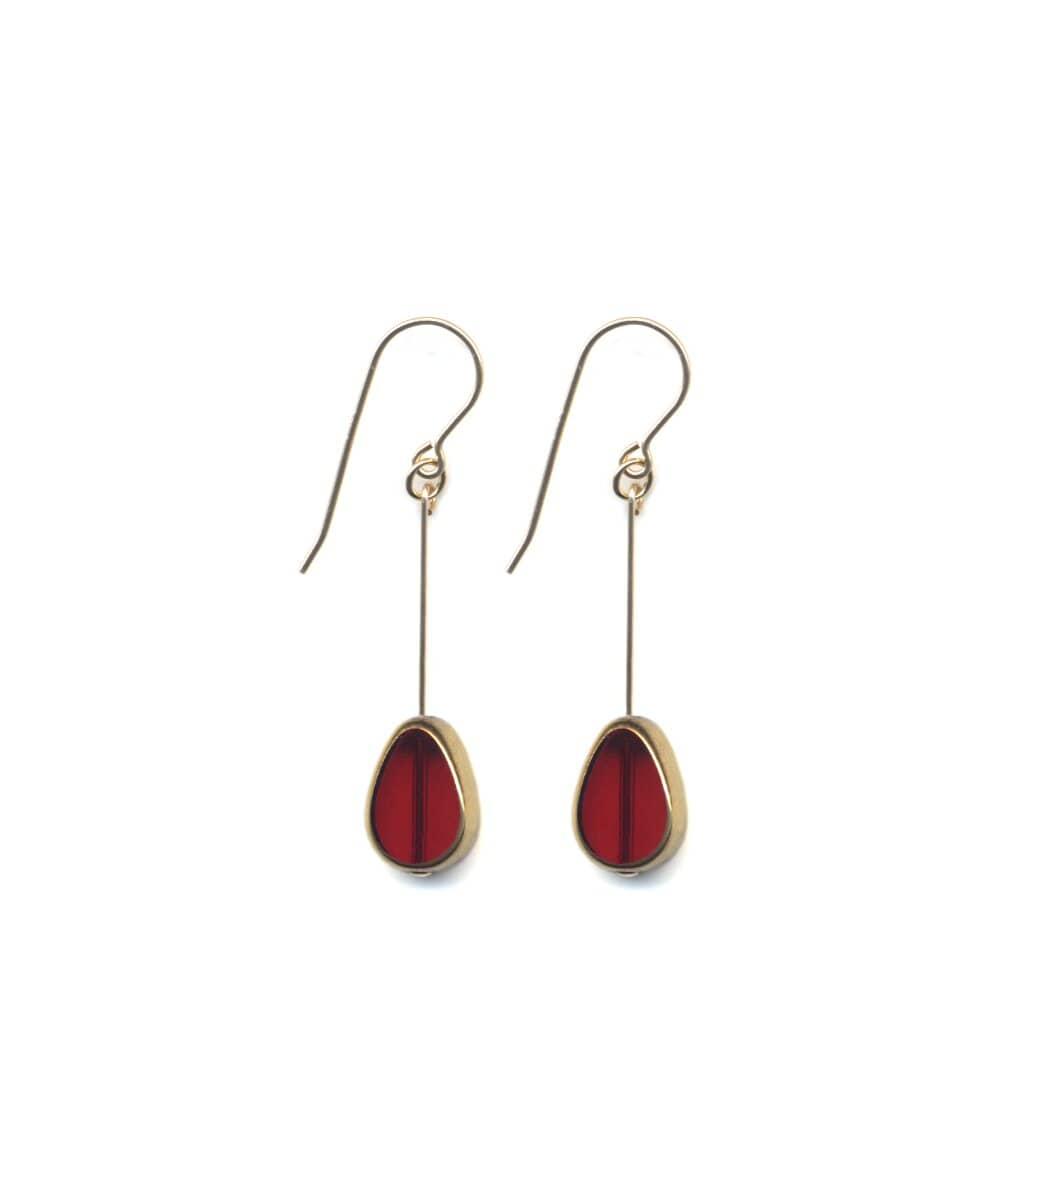 Irk Jewelry I. Ronni Kappos E1672 Ruby Petal Drop Earrings